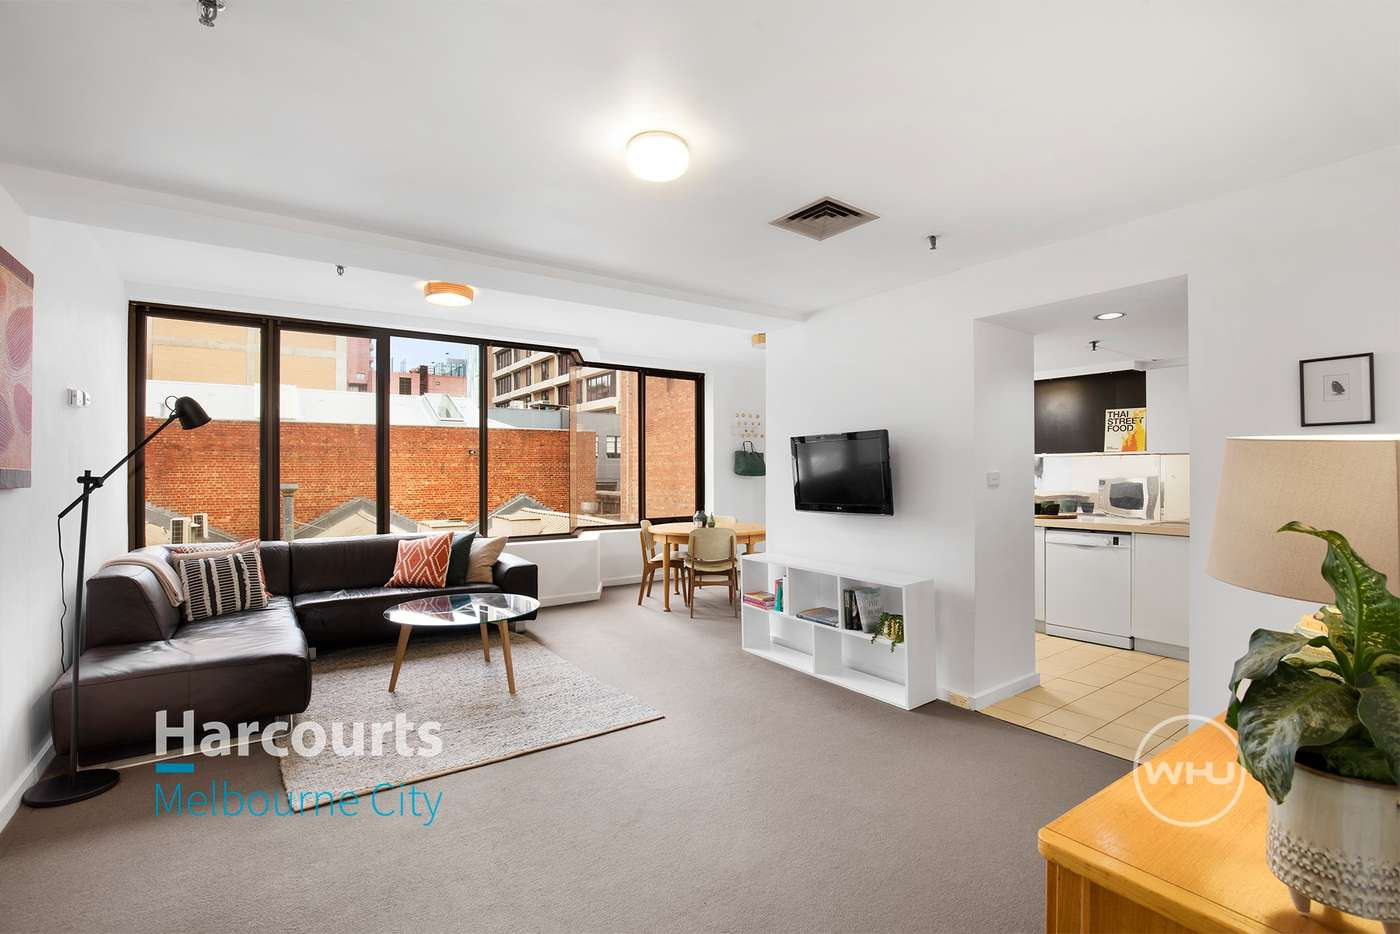 Main view of Homely apartment listing, 14/50 Bourke Street, Melbourne VIC 3000